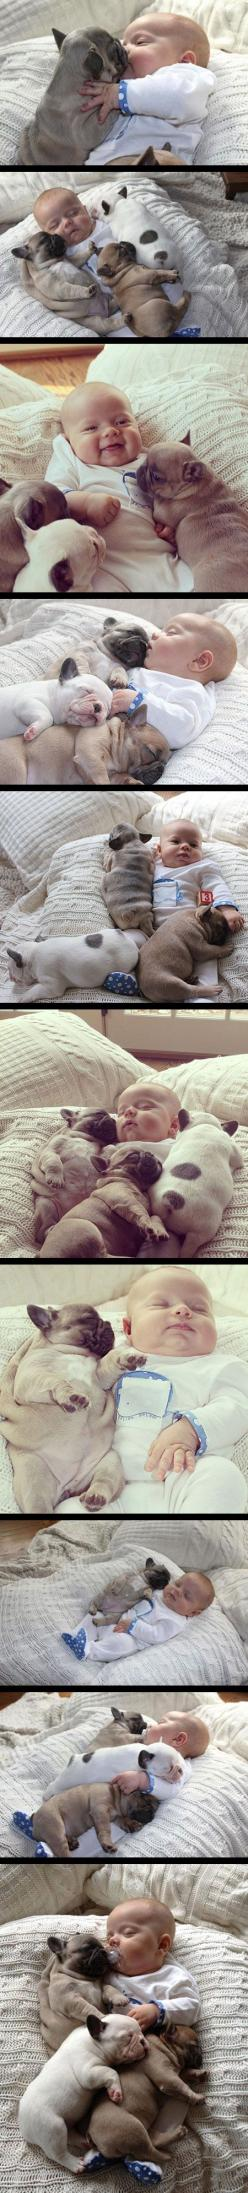 cute babies and french bulldog puppies.: Cuteness Overload, French Bulldogs, My Heart, Puppy, Baby, Animal